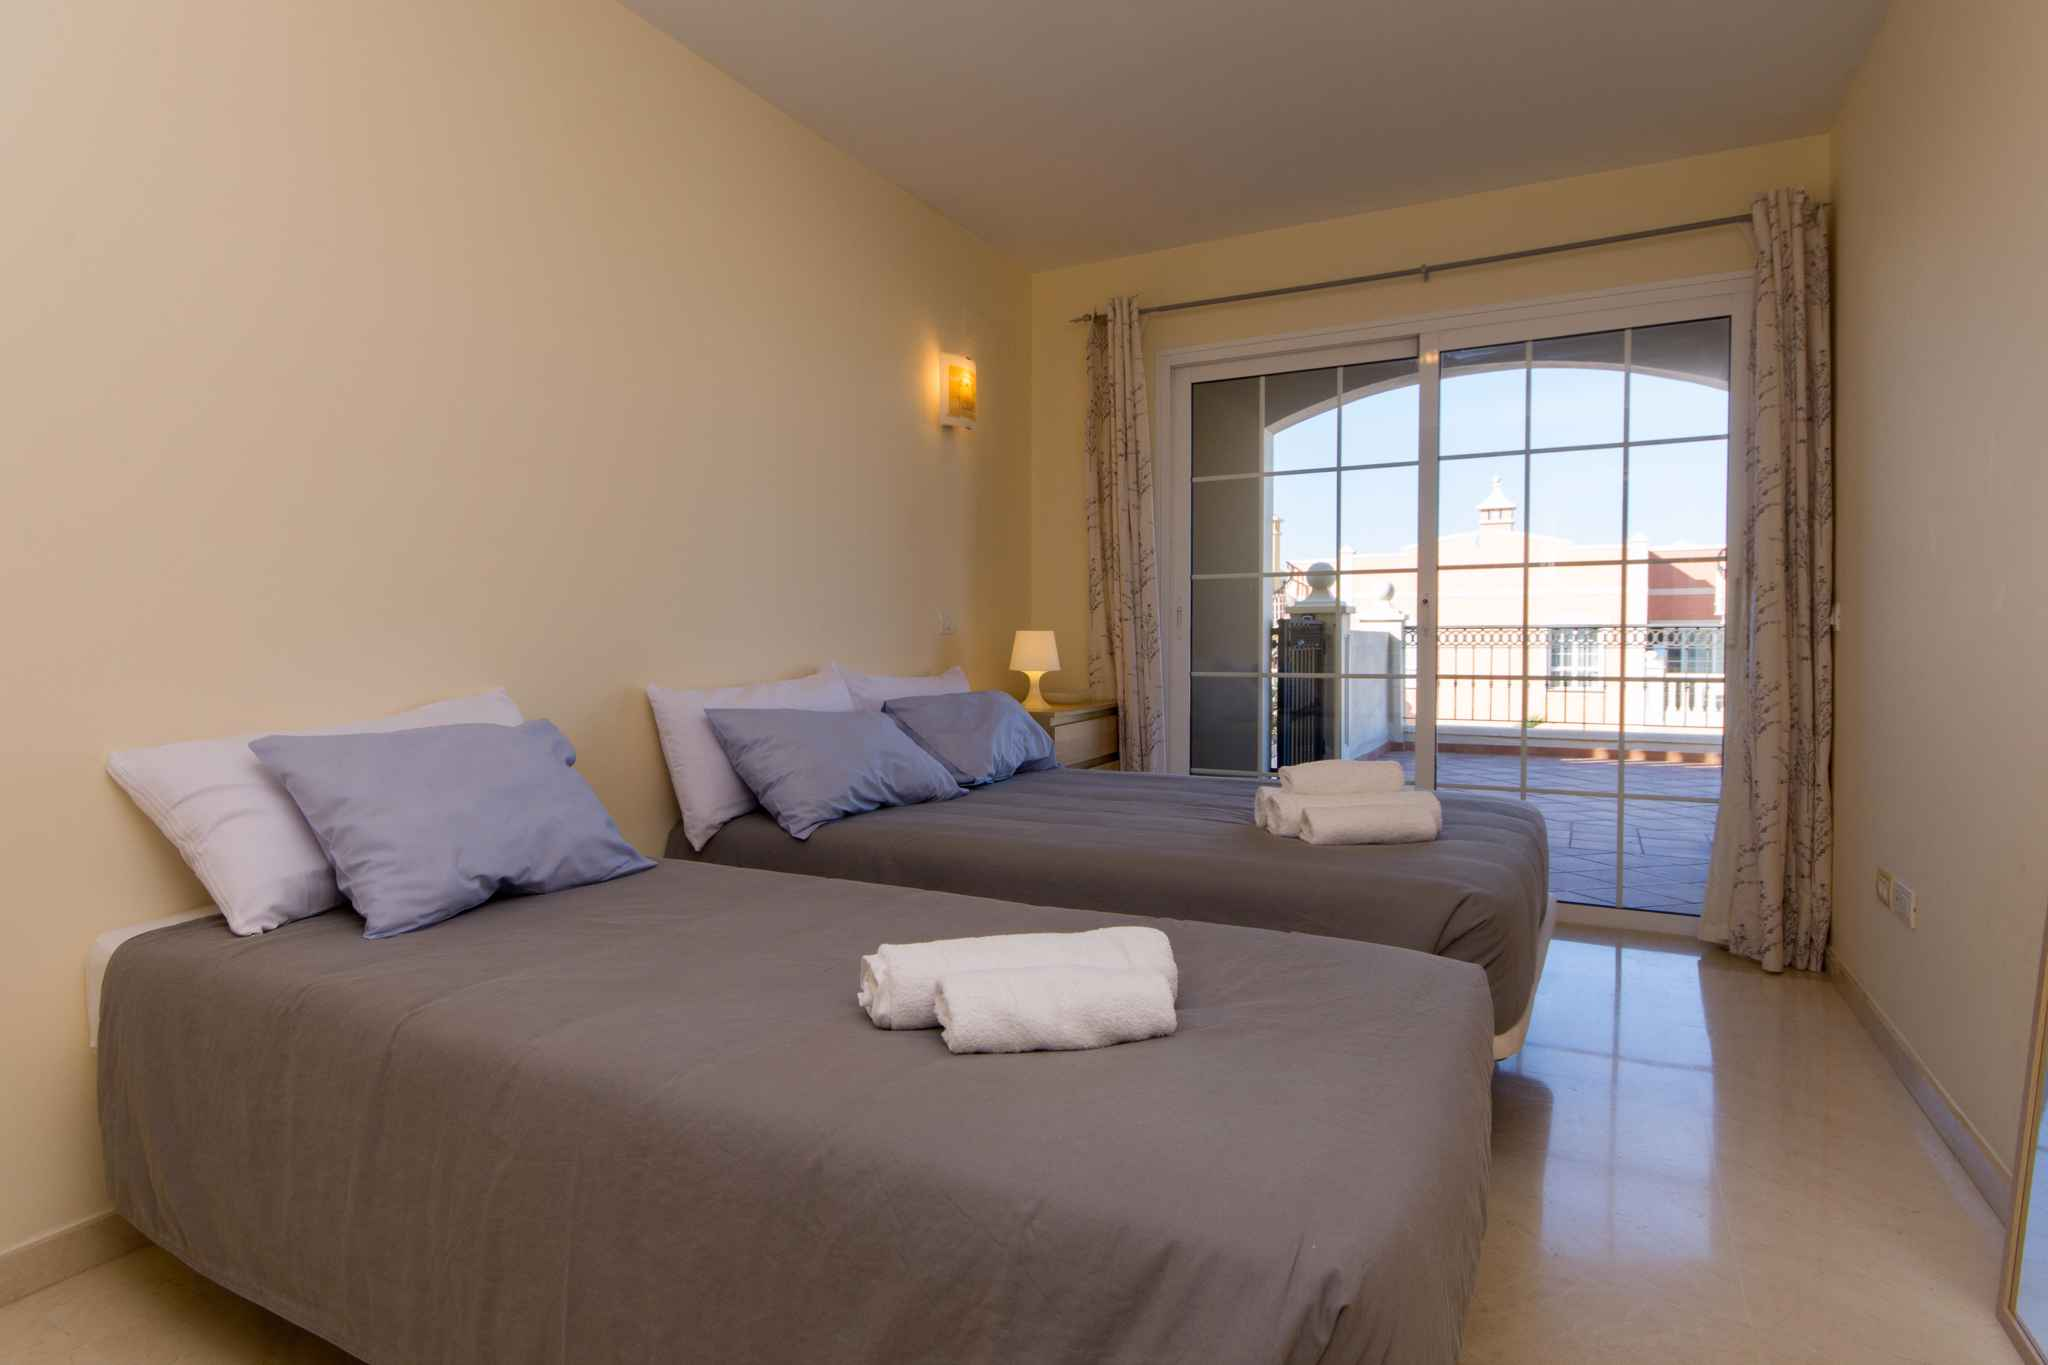 Holiday apartment mit Pool in Ferienanlage (2377552), Palm-Mar, Tenerife, Canary Islands, Spain, picture 19